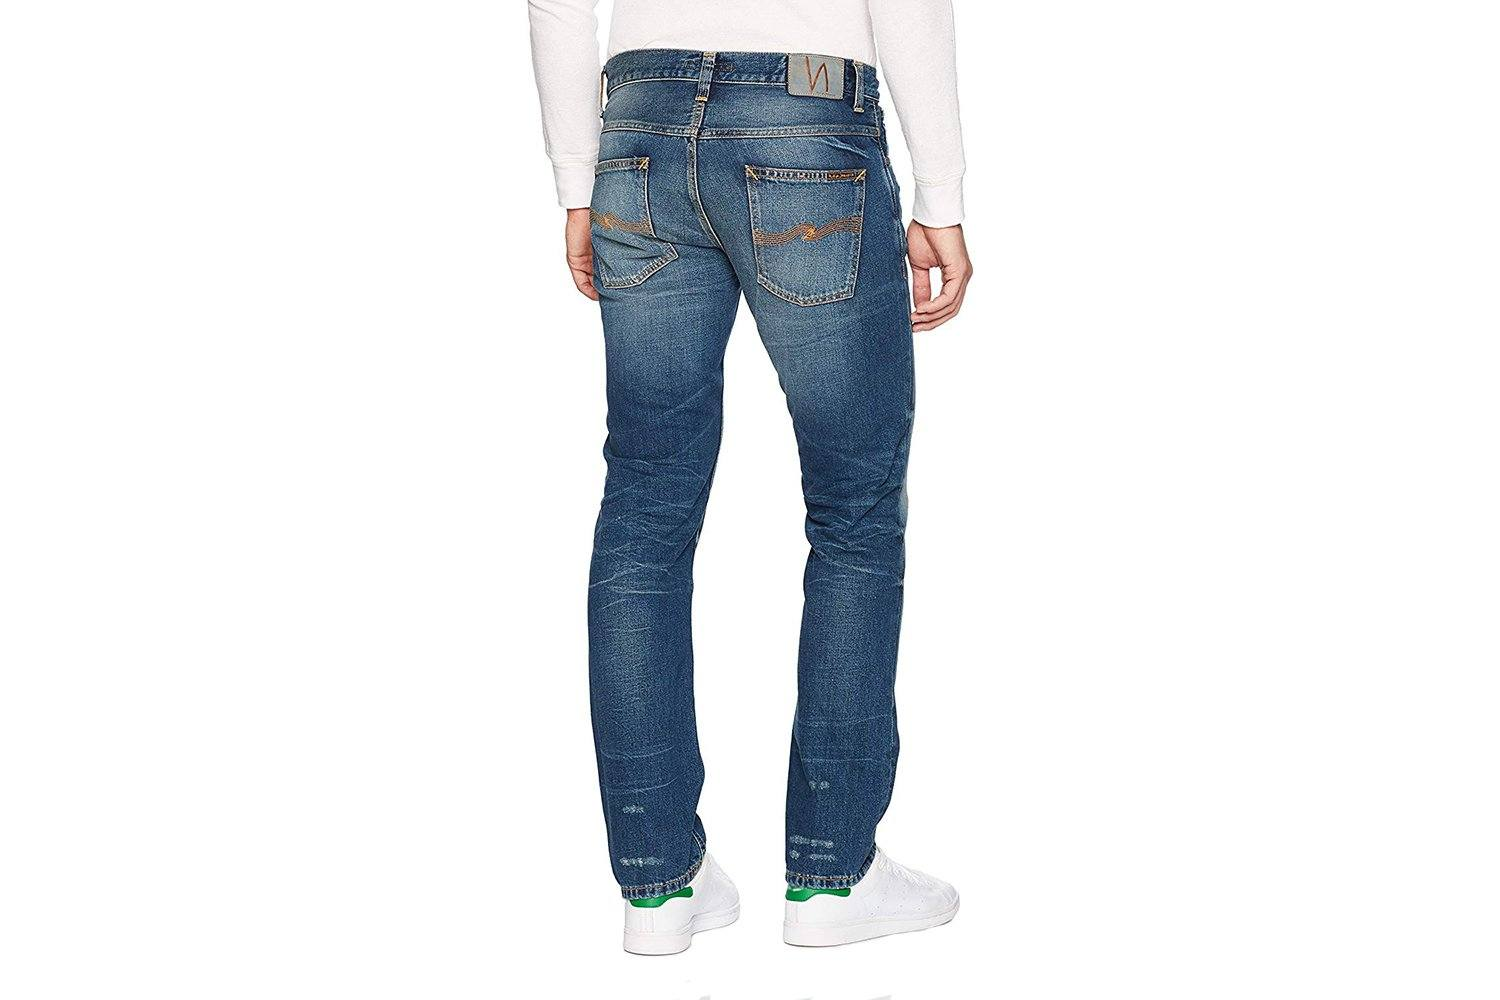 GRIM TRIM MENS SOFTGOODS NUDIE JEANS